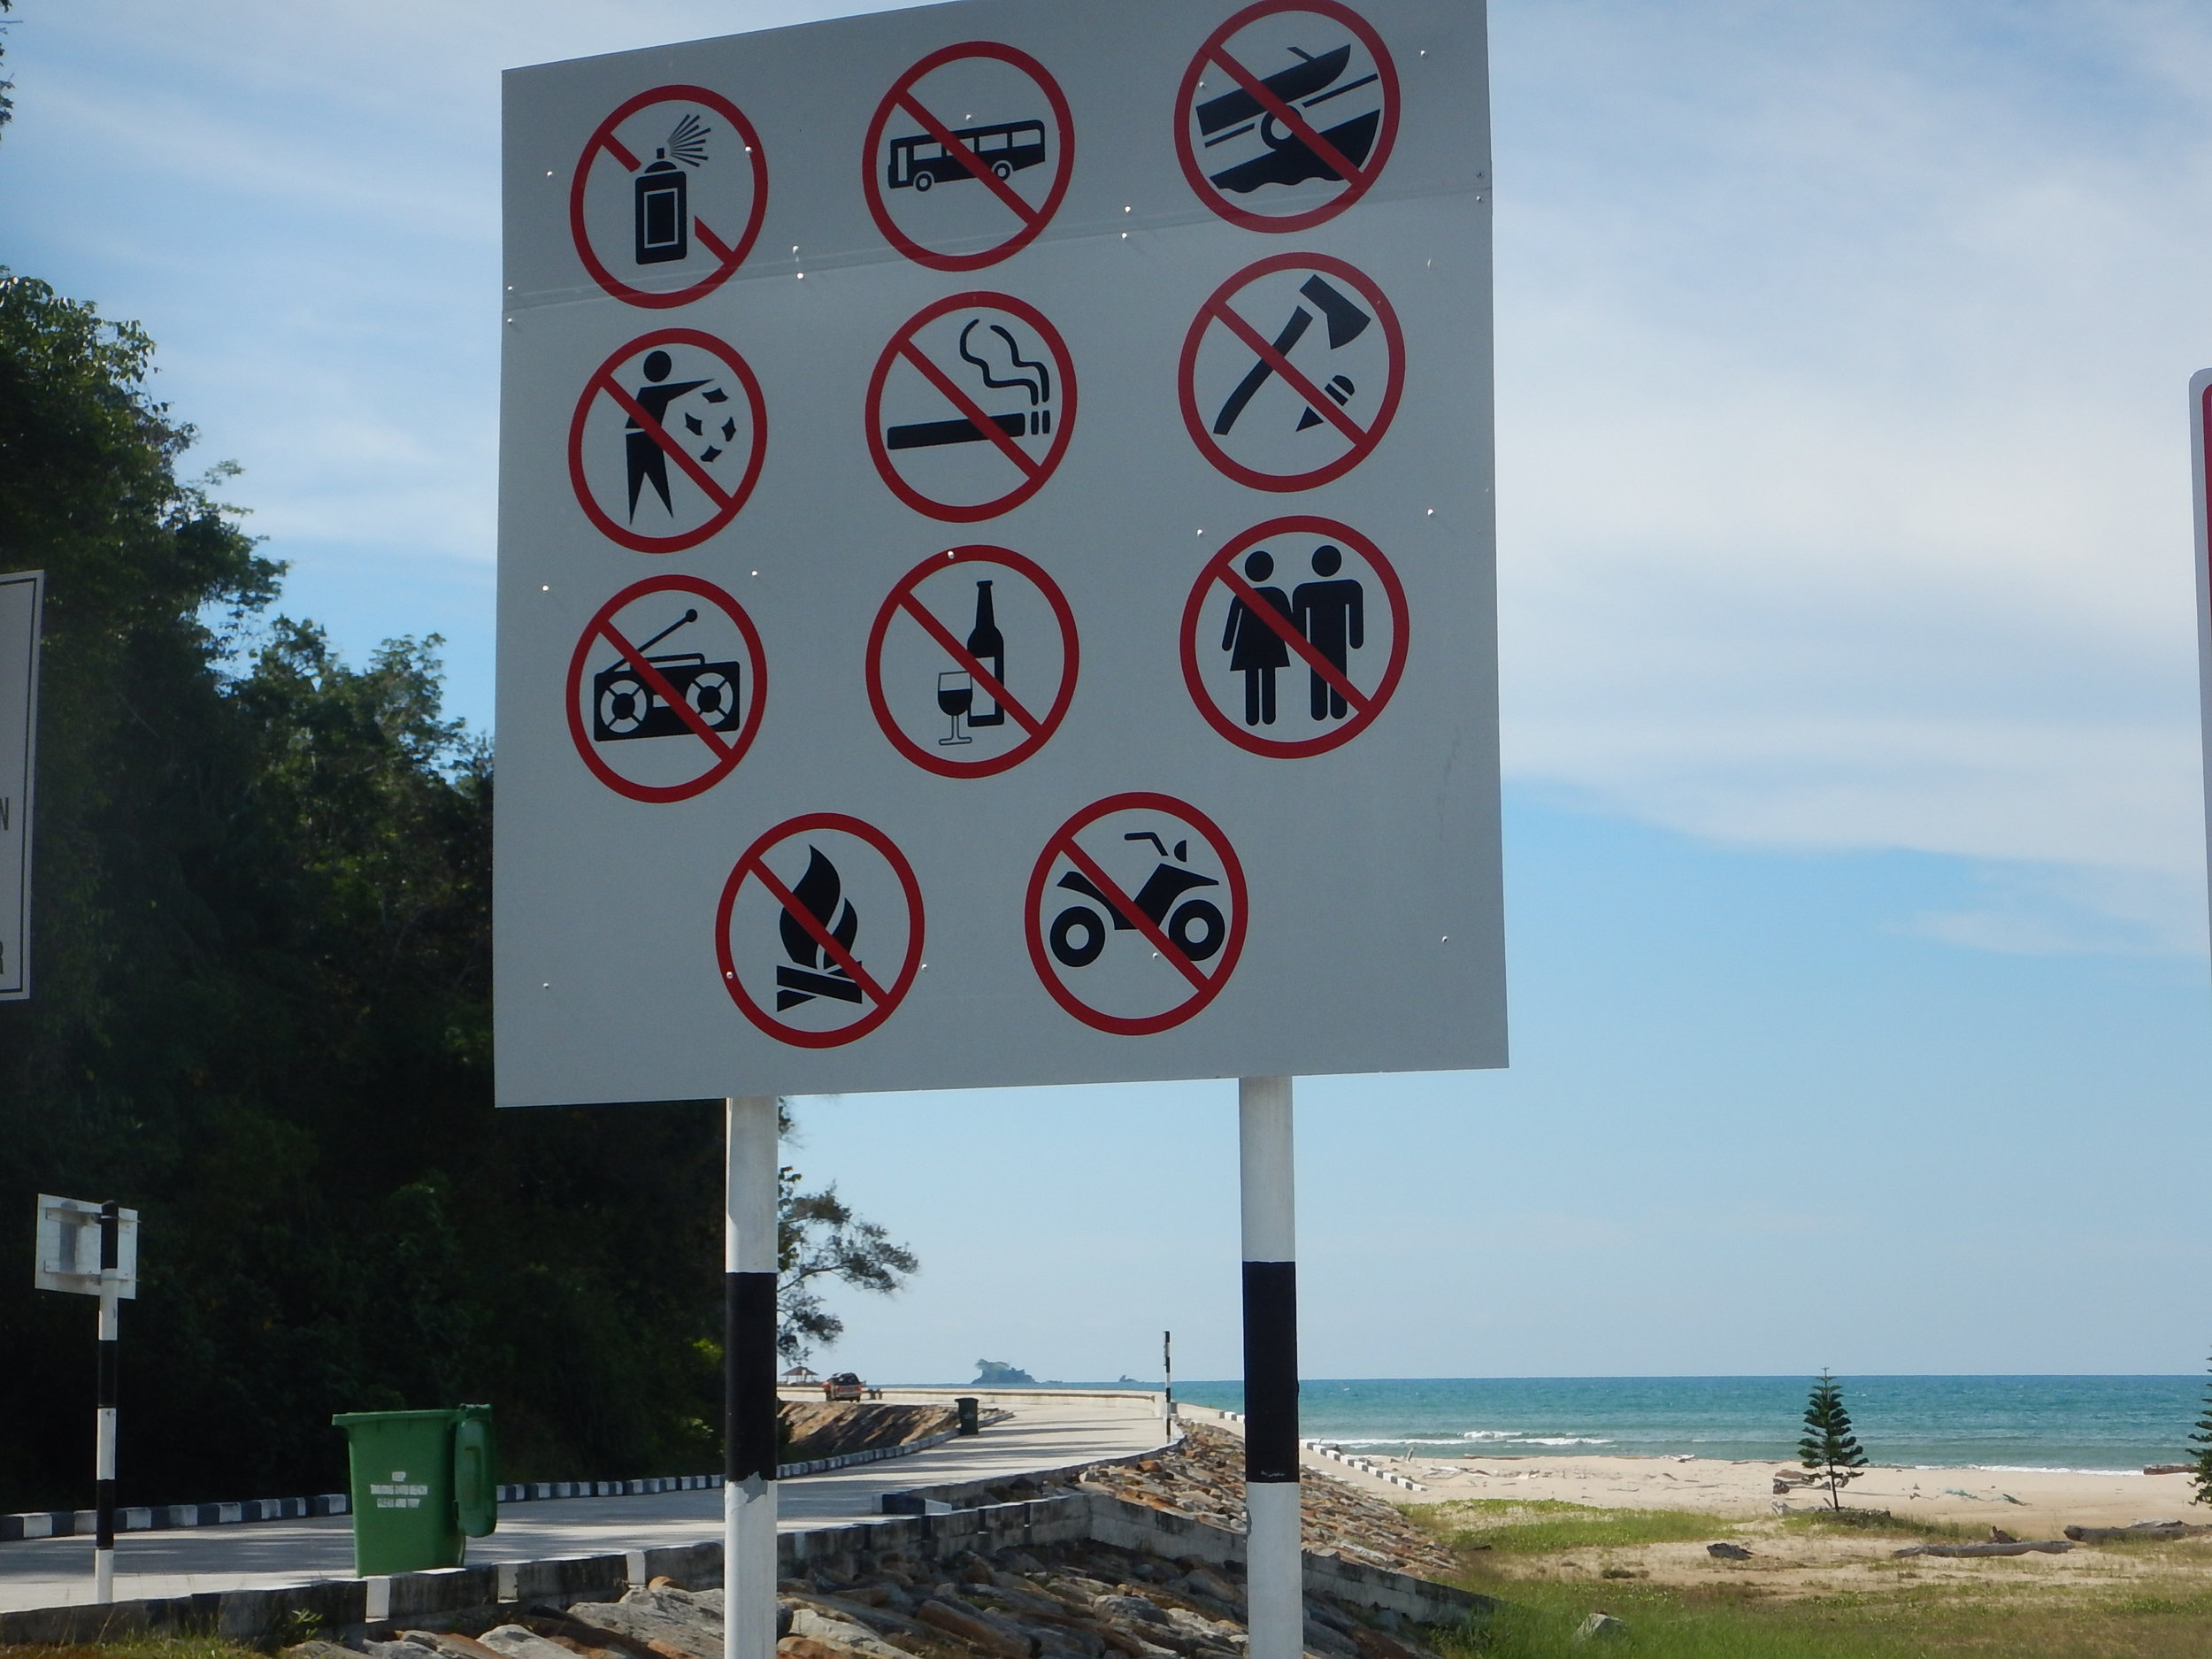 This is in Brunei and just a reminder of what you can and can't do on the beach.